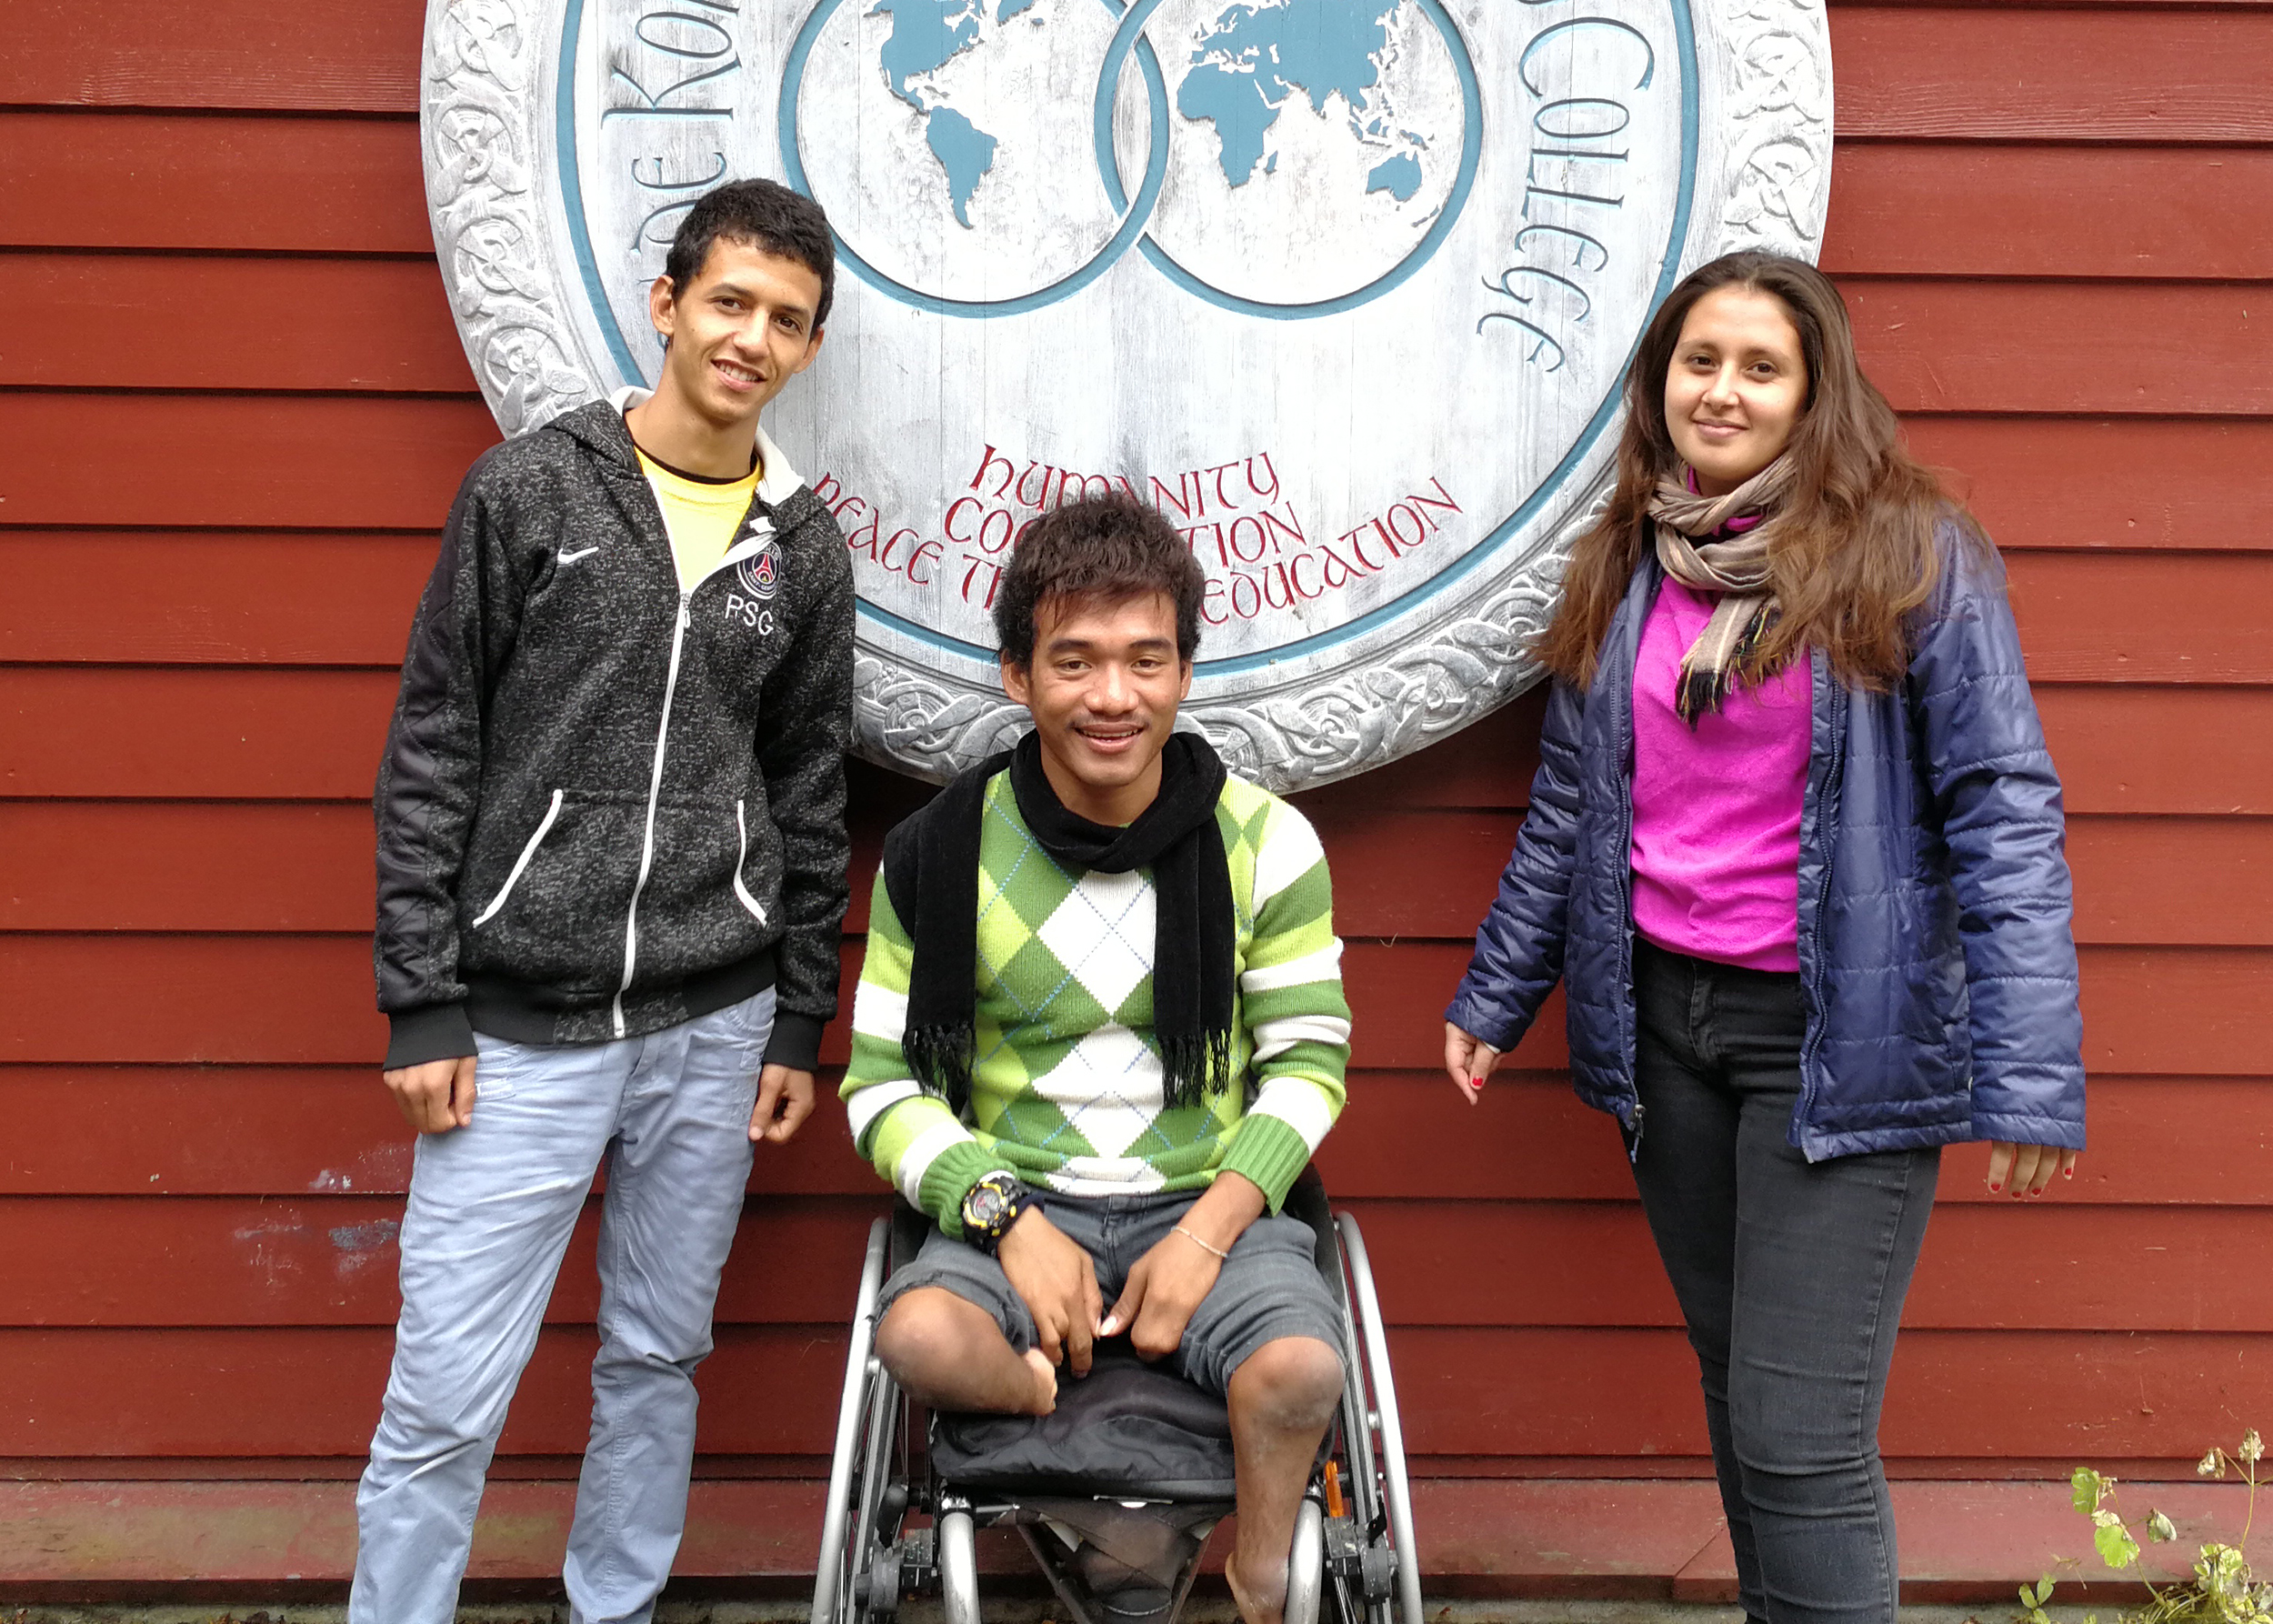 Samira (Niger), Kik (Cambodia) and Mean (Cambodia) - students currently on our Foundation Year Programme